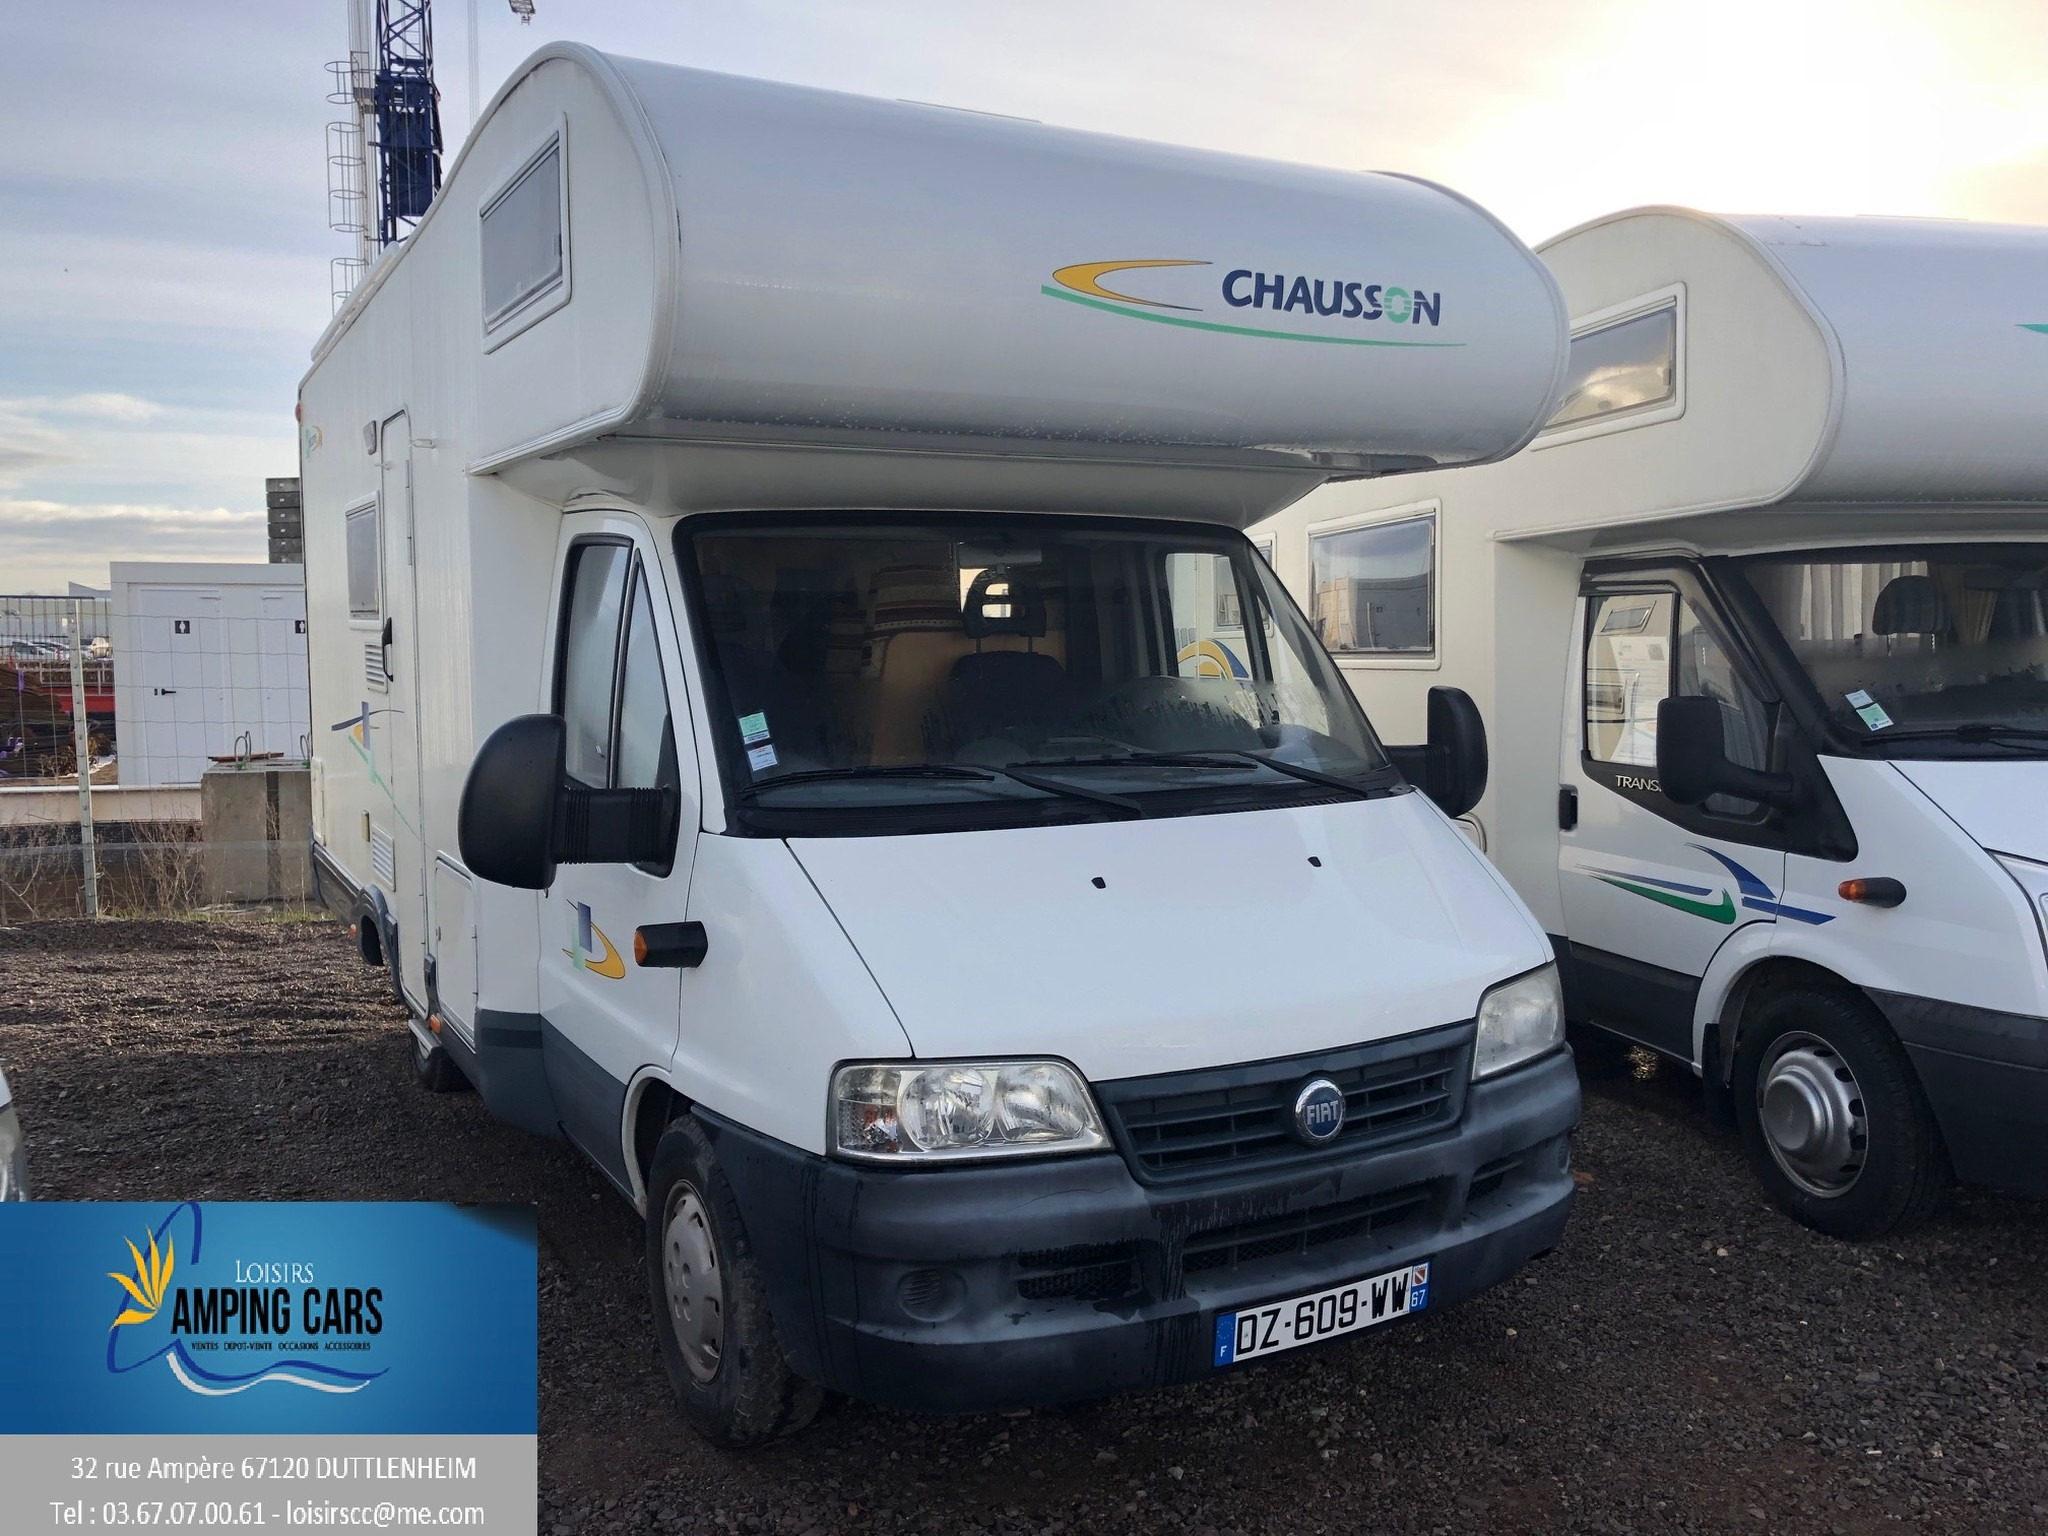 Camping-car CHAUSSON WELCOME 14